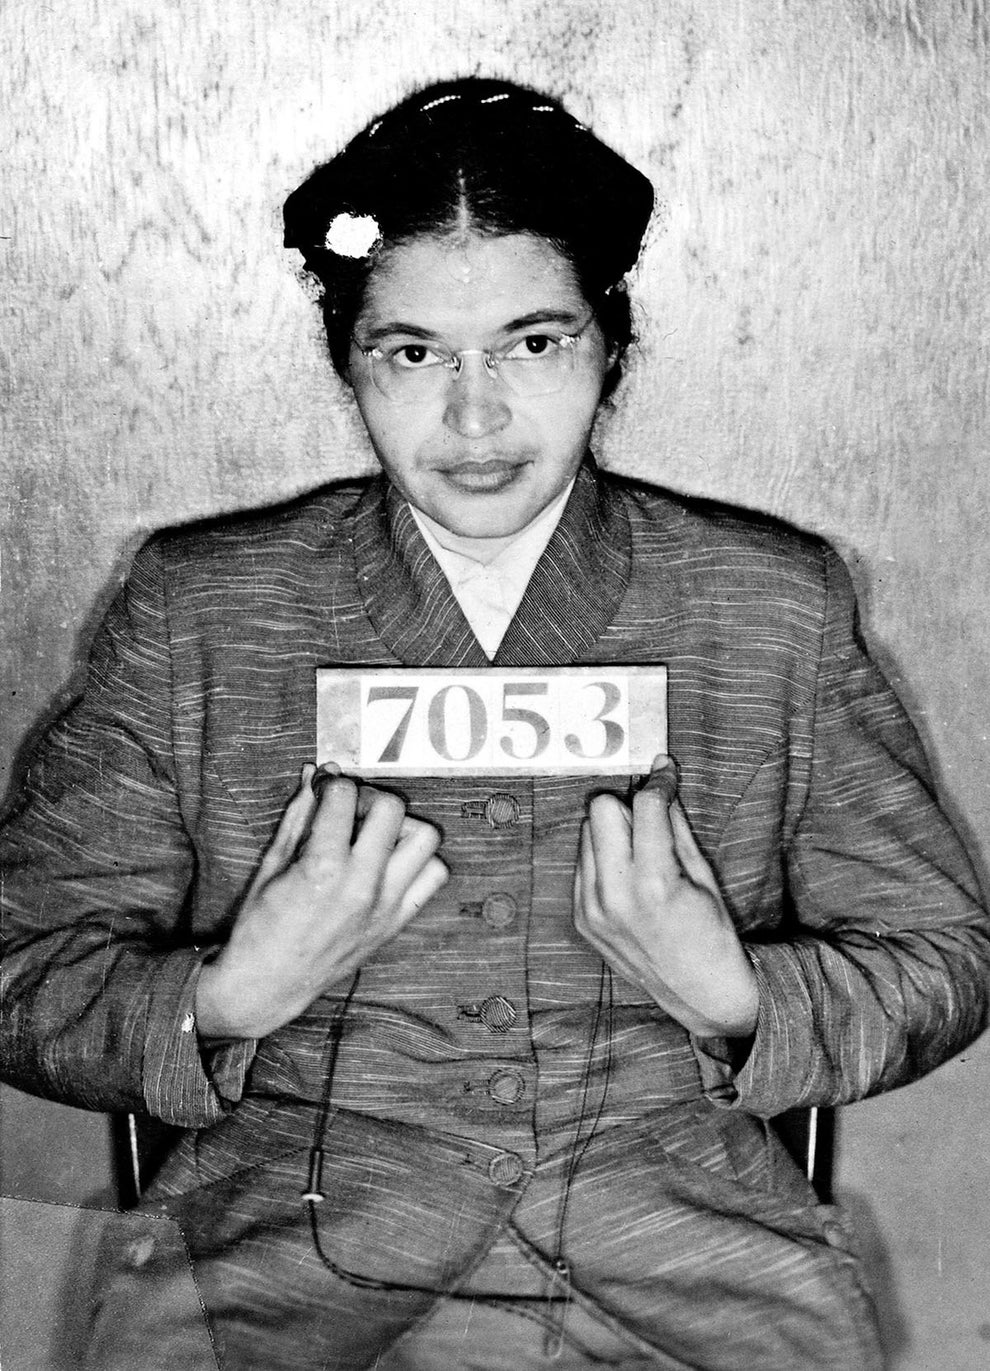 Rosa Parks, activist and icon of American civil rights.